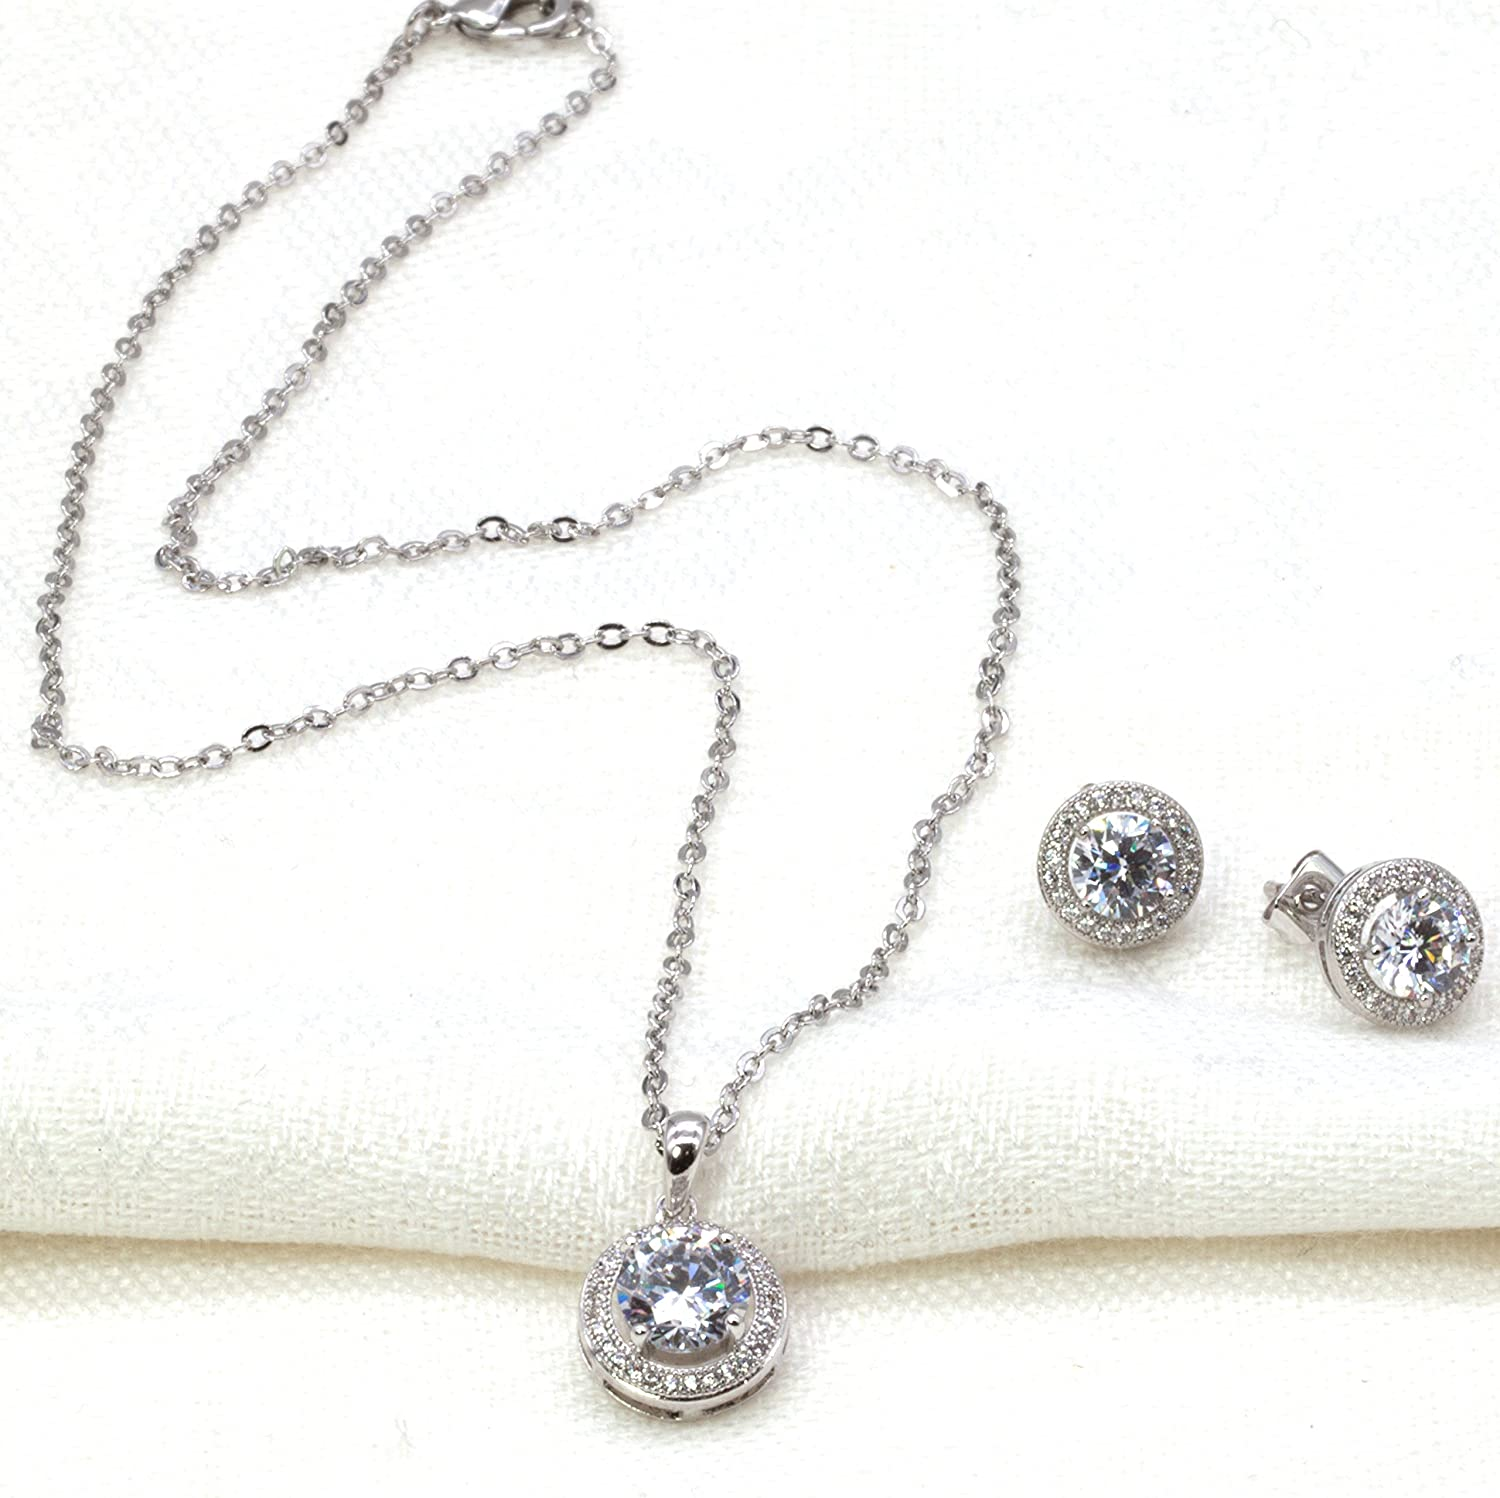 Round Classic Jewelry Set Necklace & Earrings AAA Cubic Zirconia For Women Wedding Party